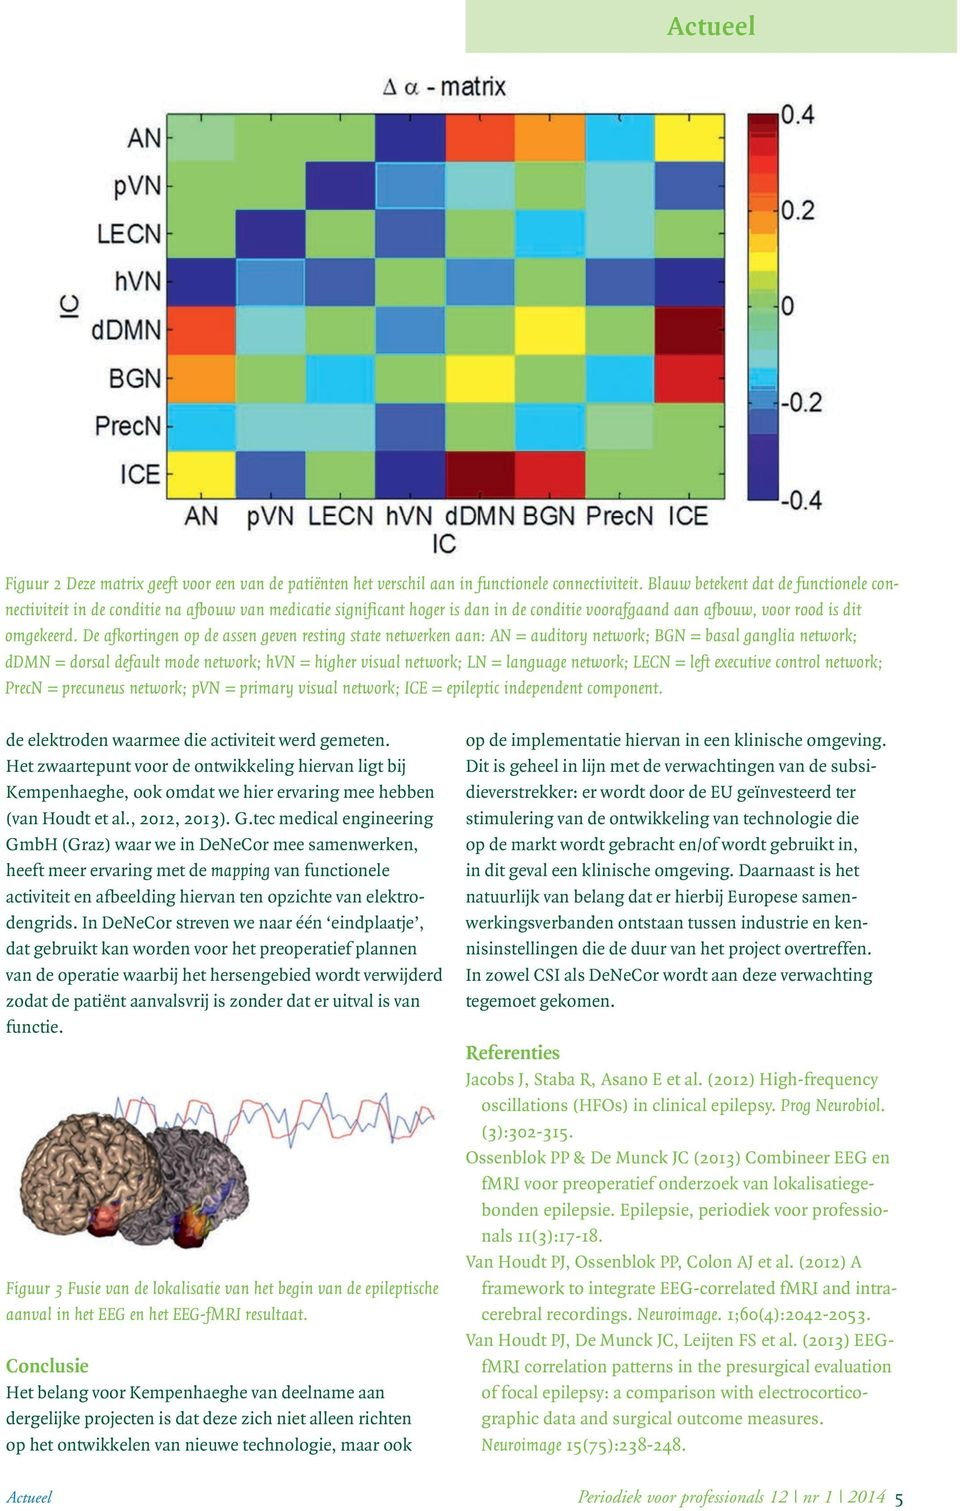 De afkortingen op de assen geven resting state netwerken aan: AN = auditory network; BGN = basal ganglia network; ddmn = dorsal default mode network; hvn = higher visual network; LN = language